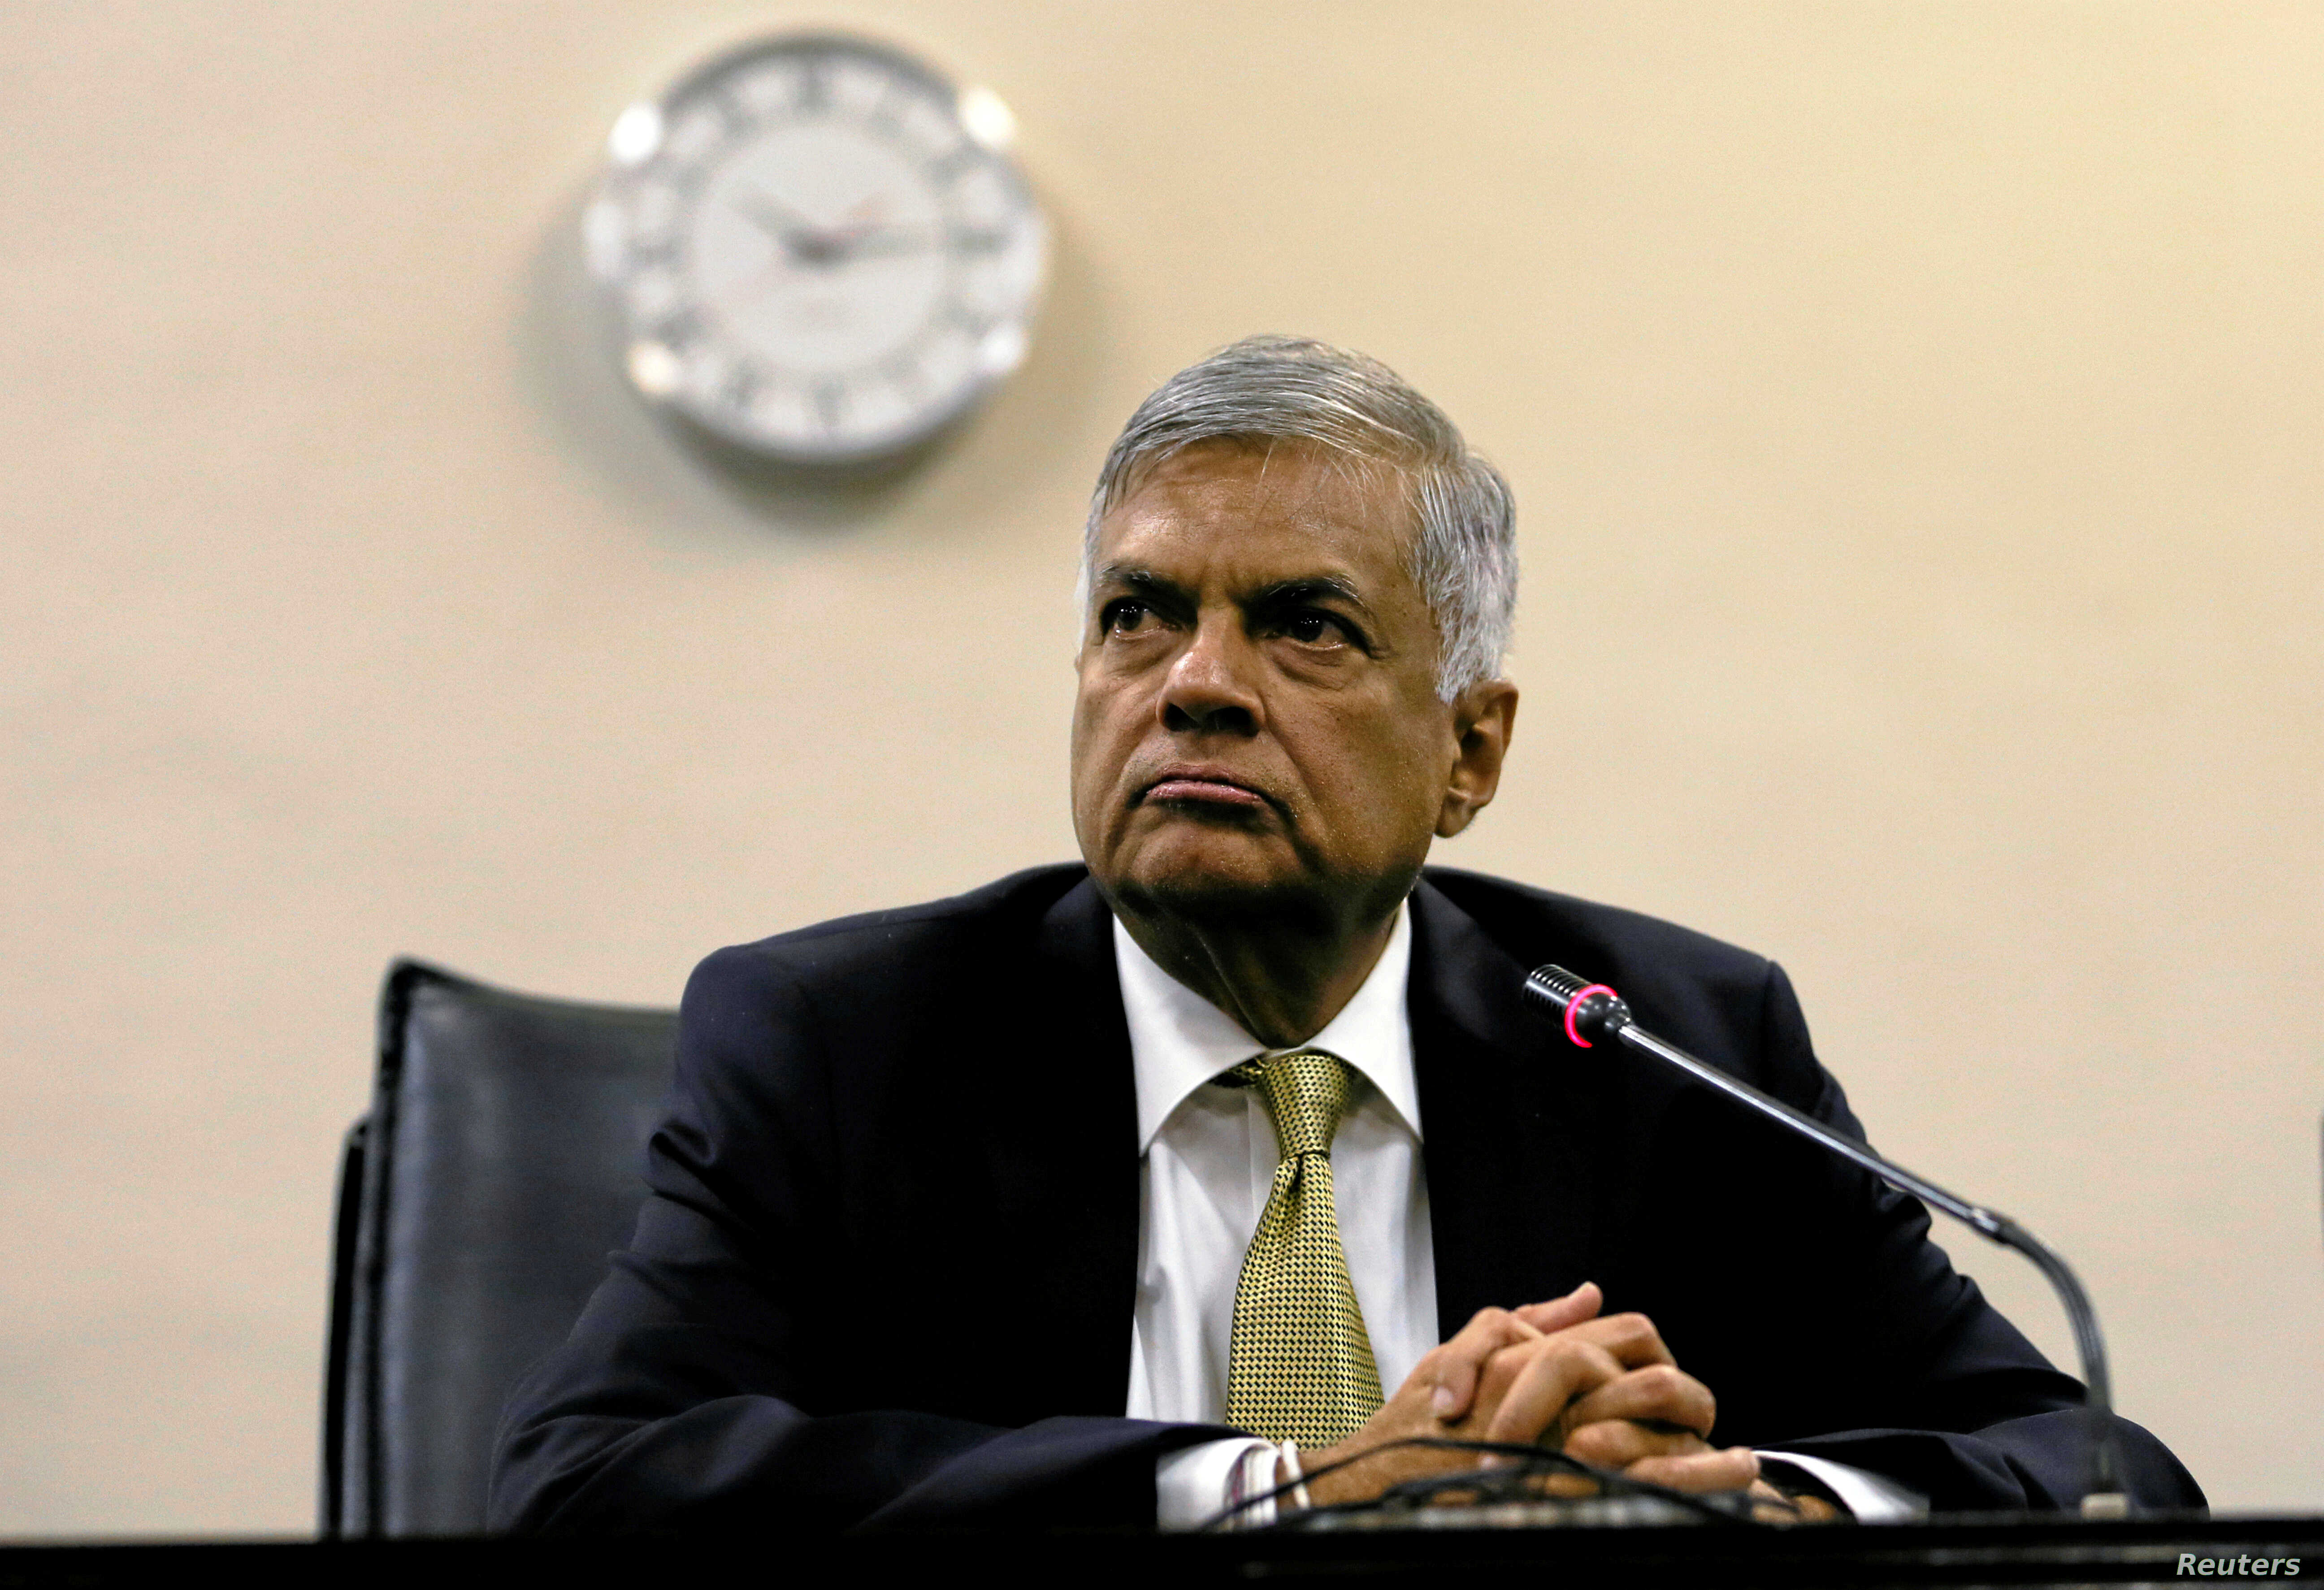 FILE - Sri Lankan Prime Minister Ranil Wickremesinghe looks on at a news conference in parliament in Colombo, Sri Lanka, April 4, 2018.